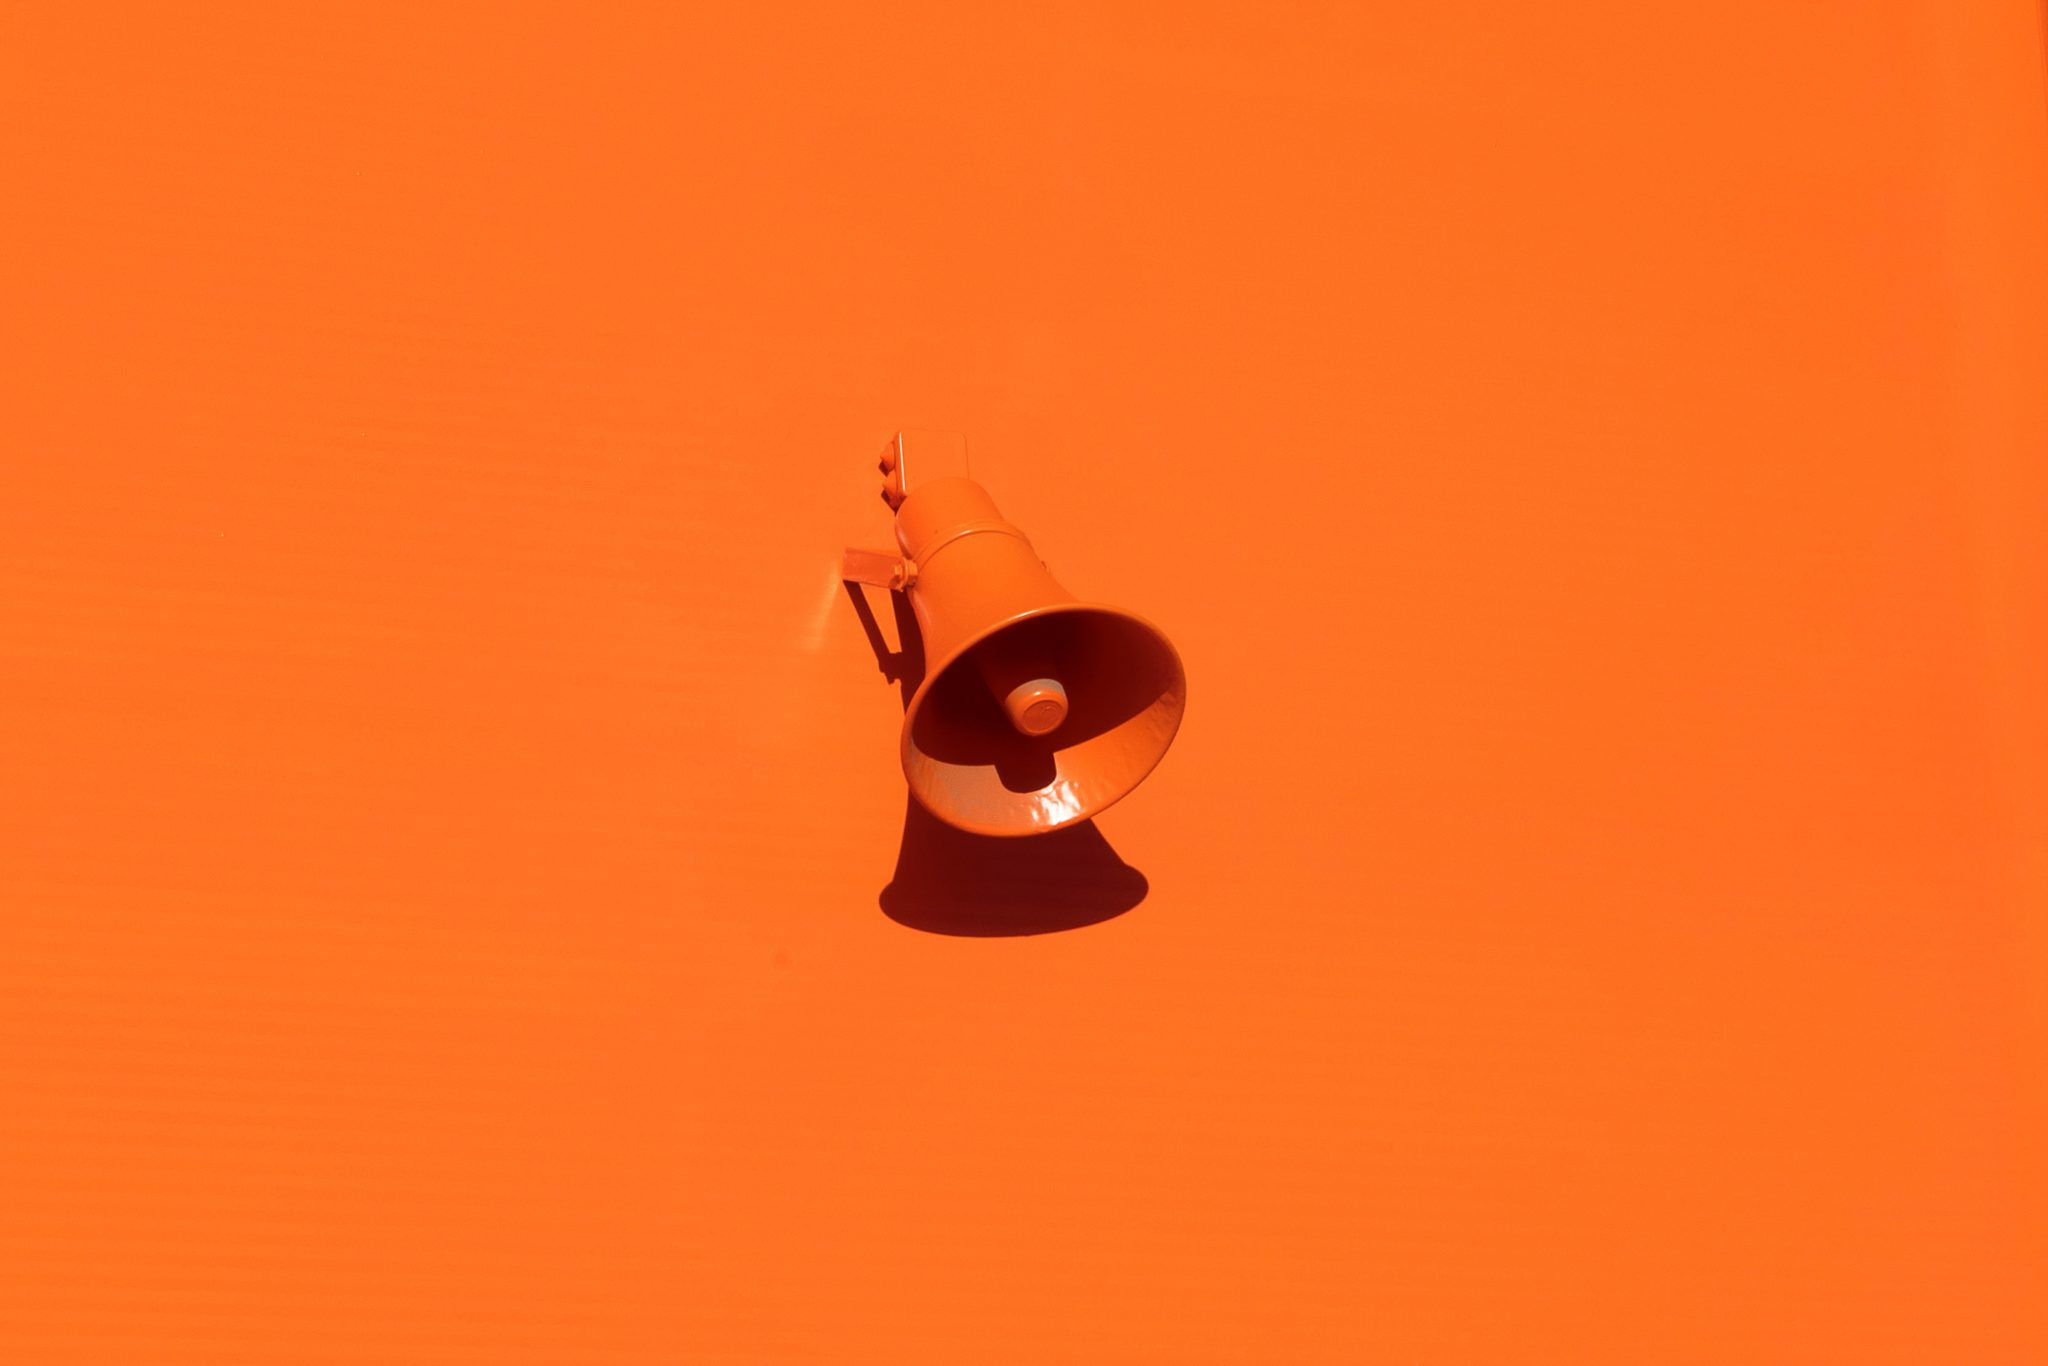 Orange microphone on orange background